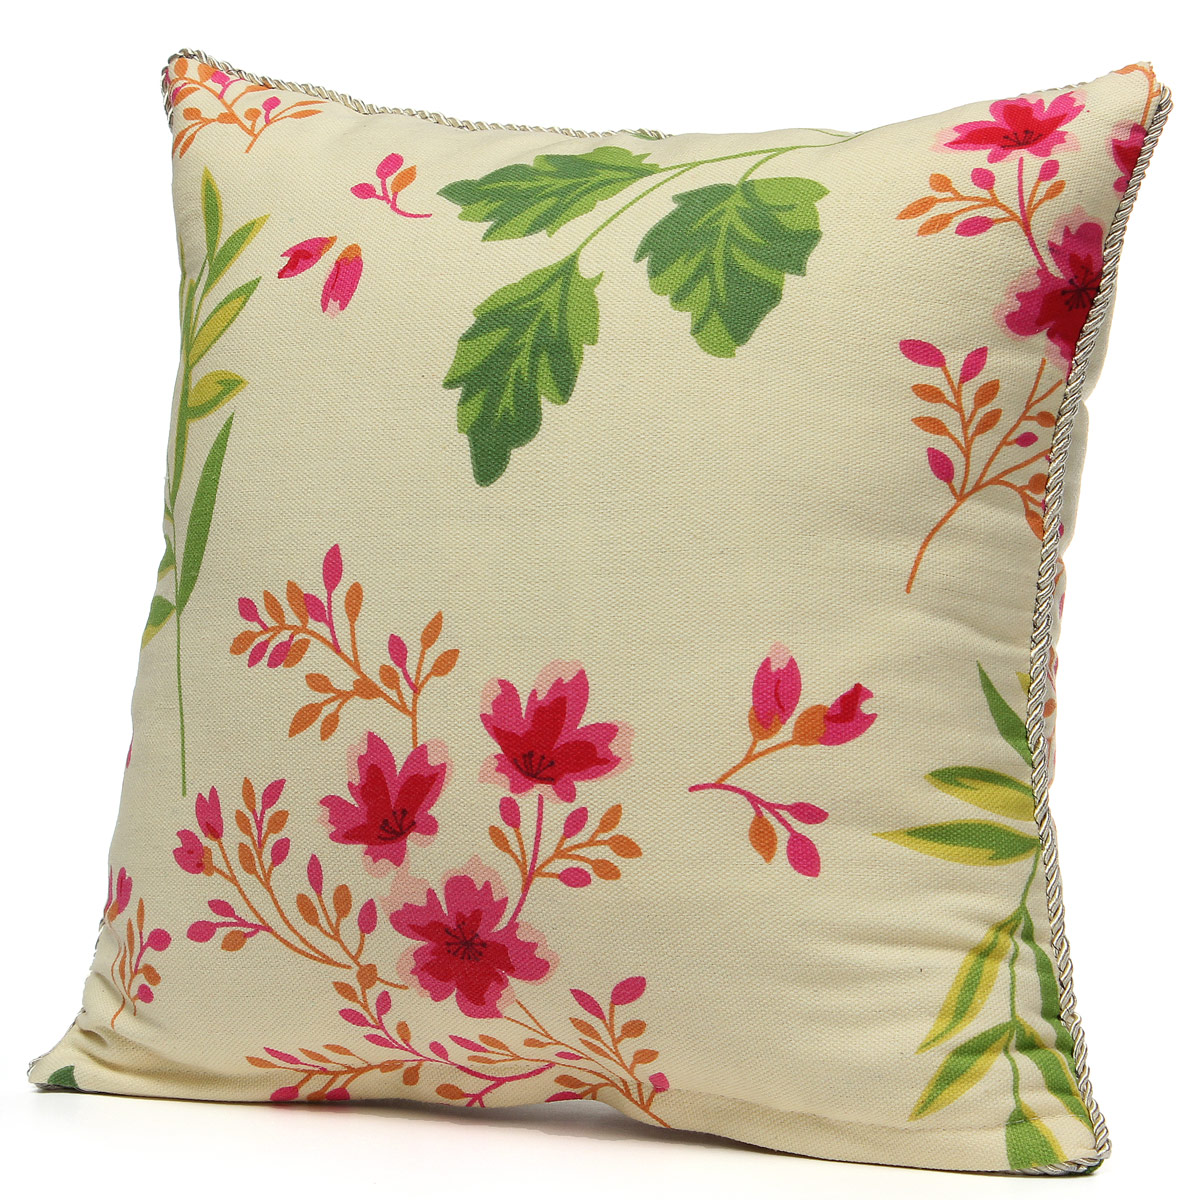 Vintage Decorative Throw Pillows : Vintage Fashion Square Throw Pillow Cases Home Sofa Decorative Cushion Cover